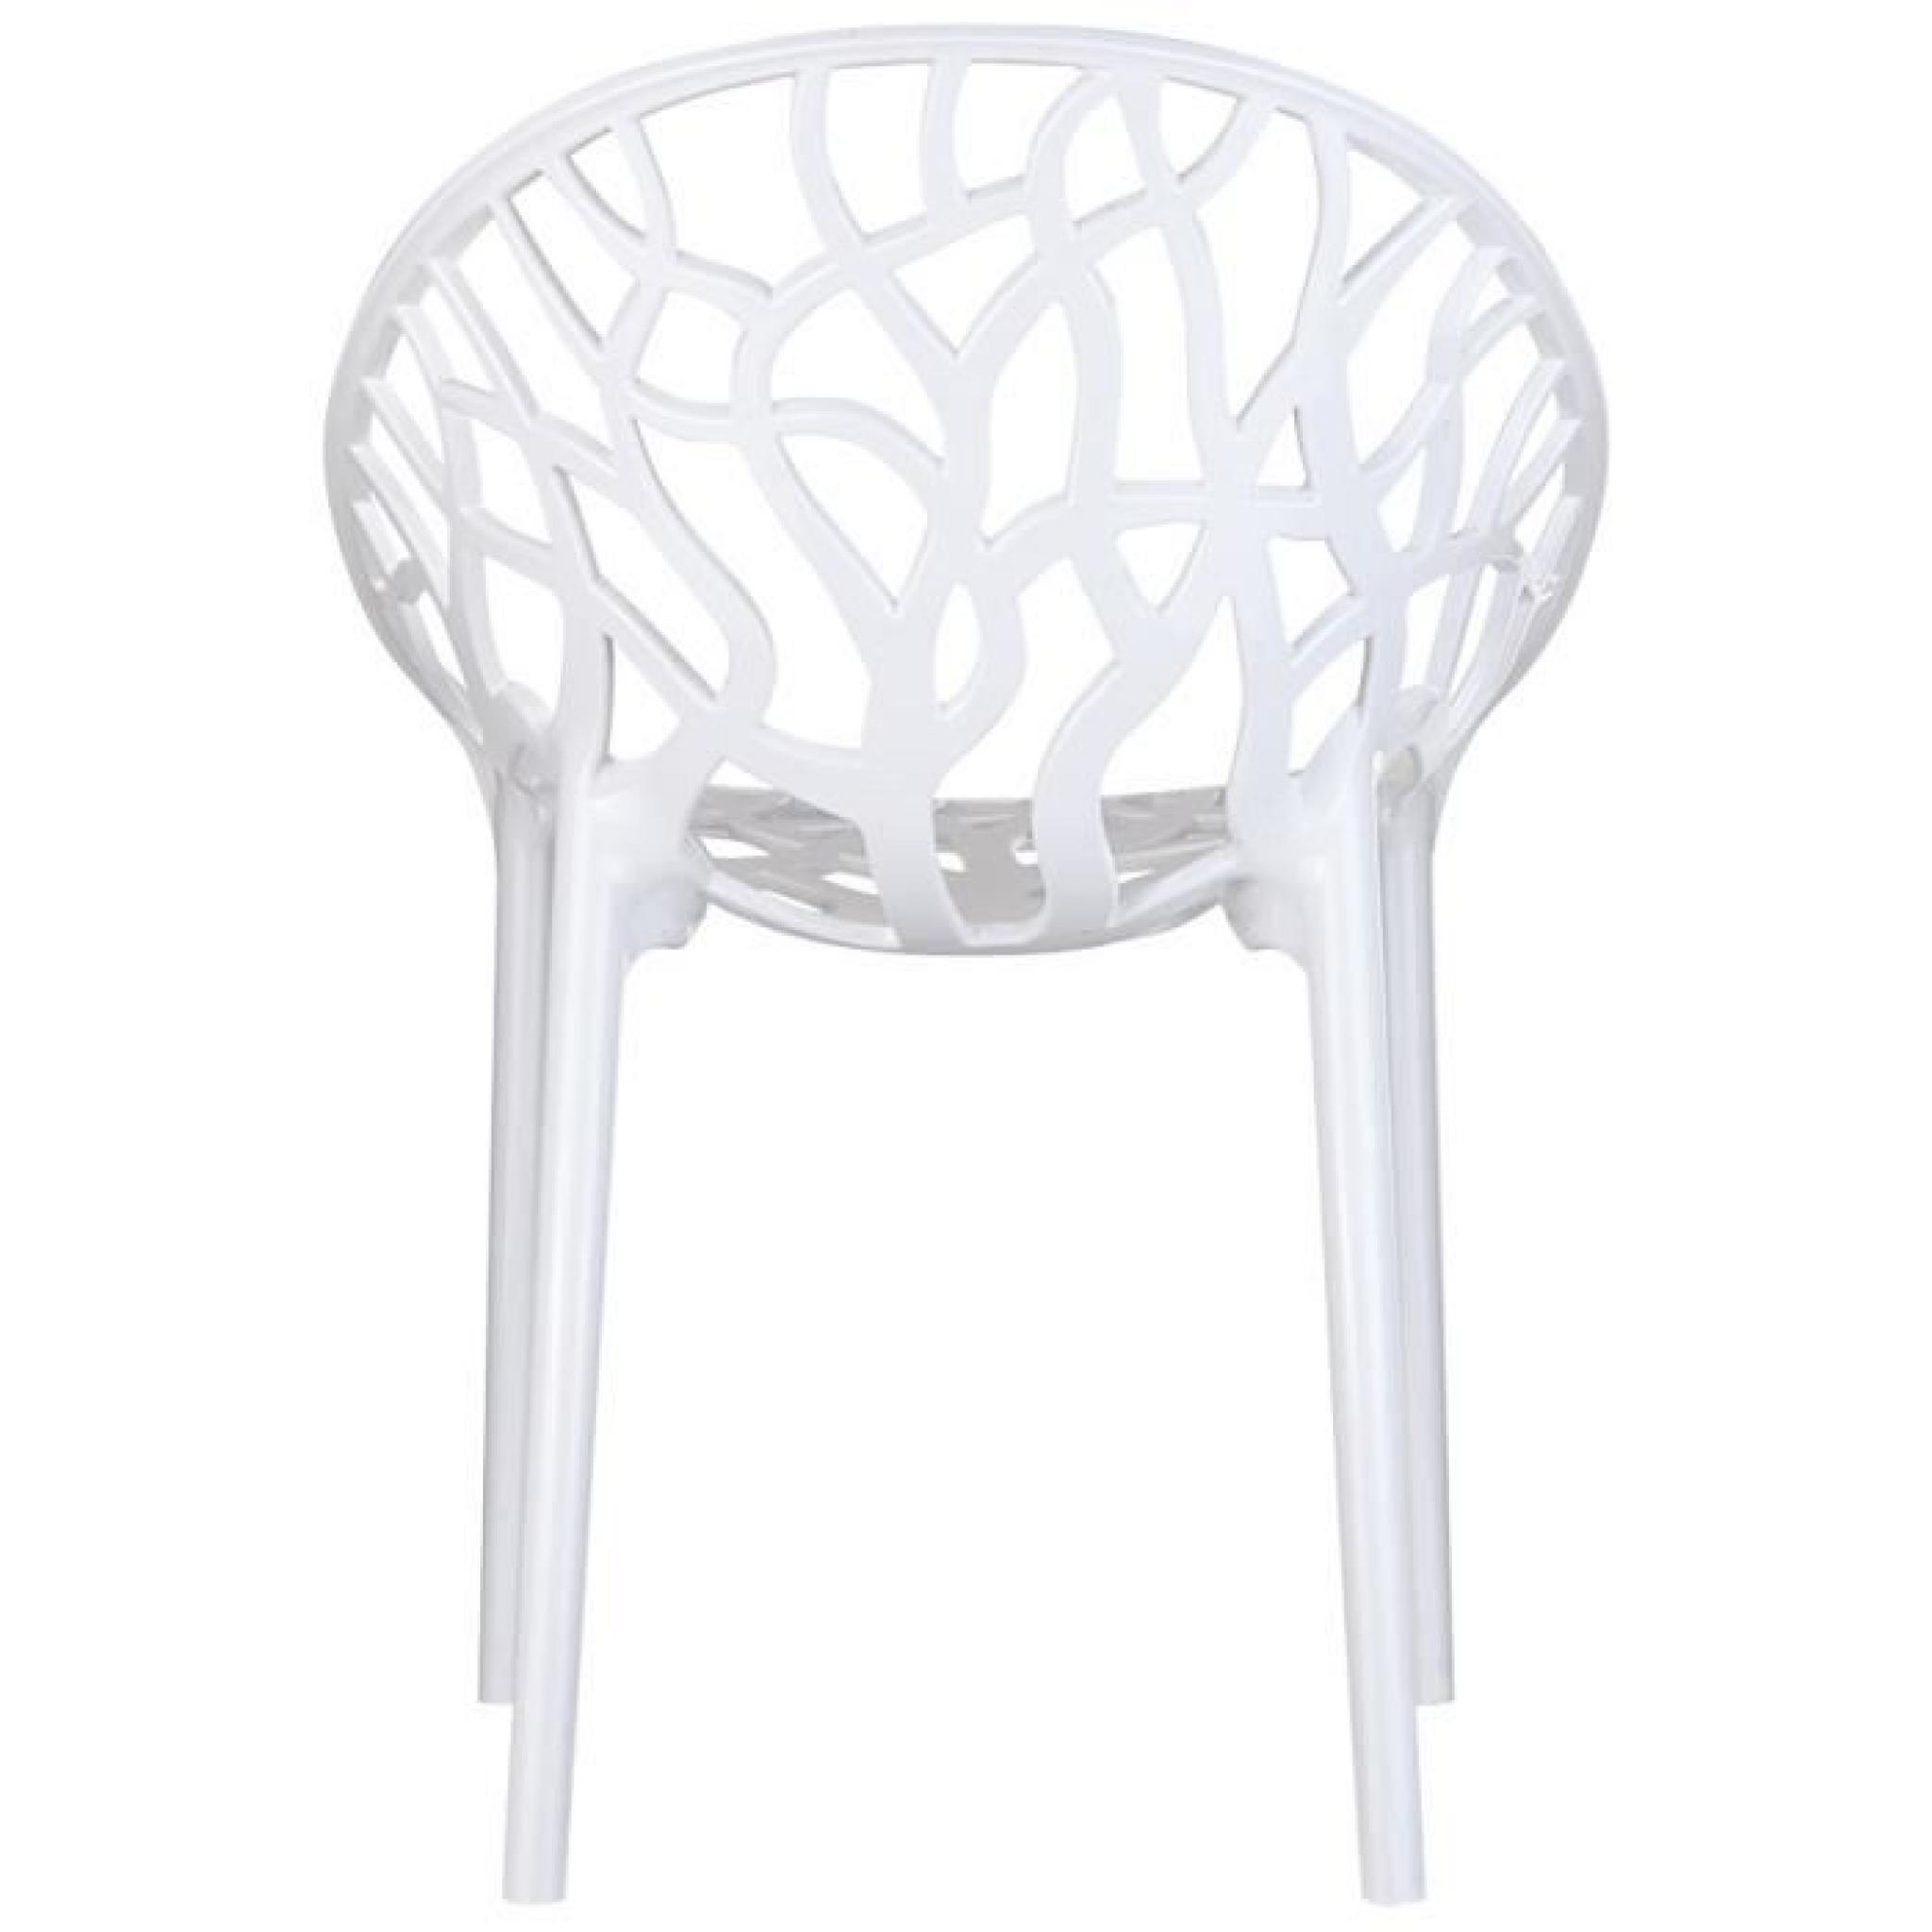 Chaises Blanches Modernes Chaise Blanche Moderne Chaise Blanche Et Bois Clair